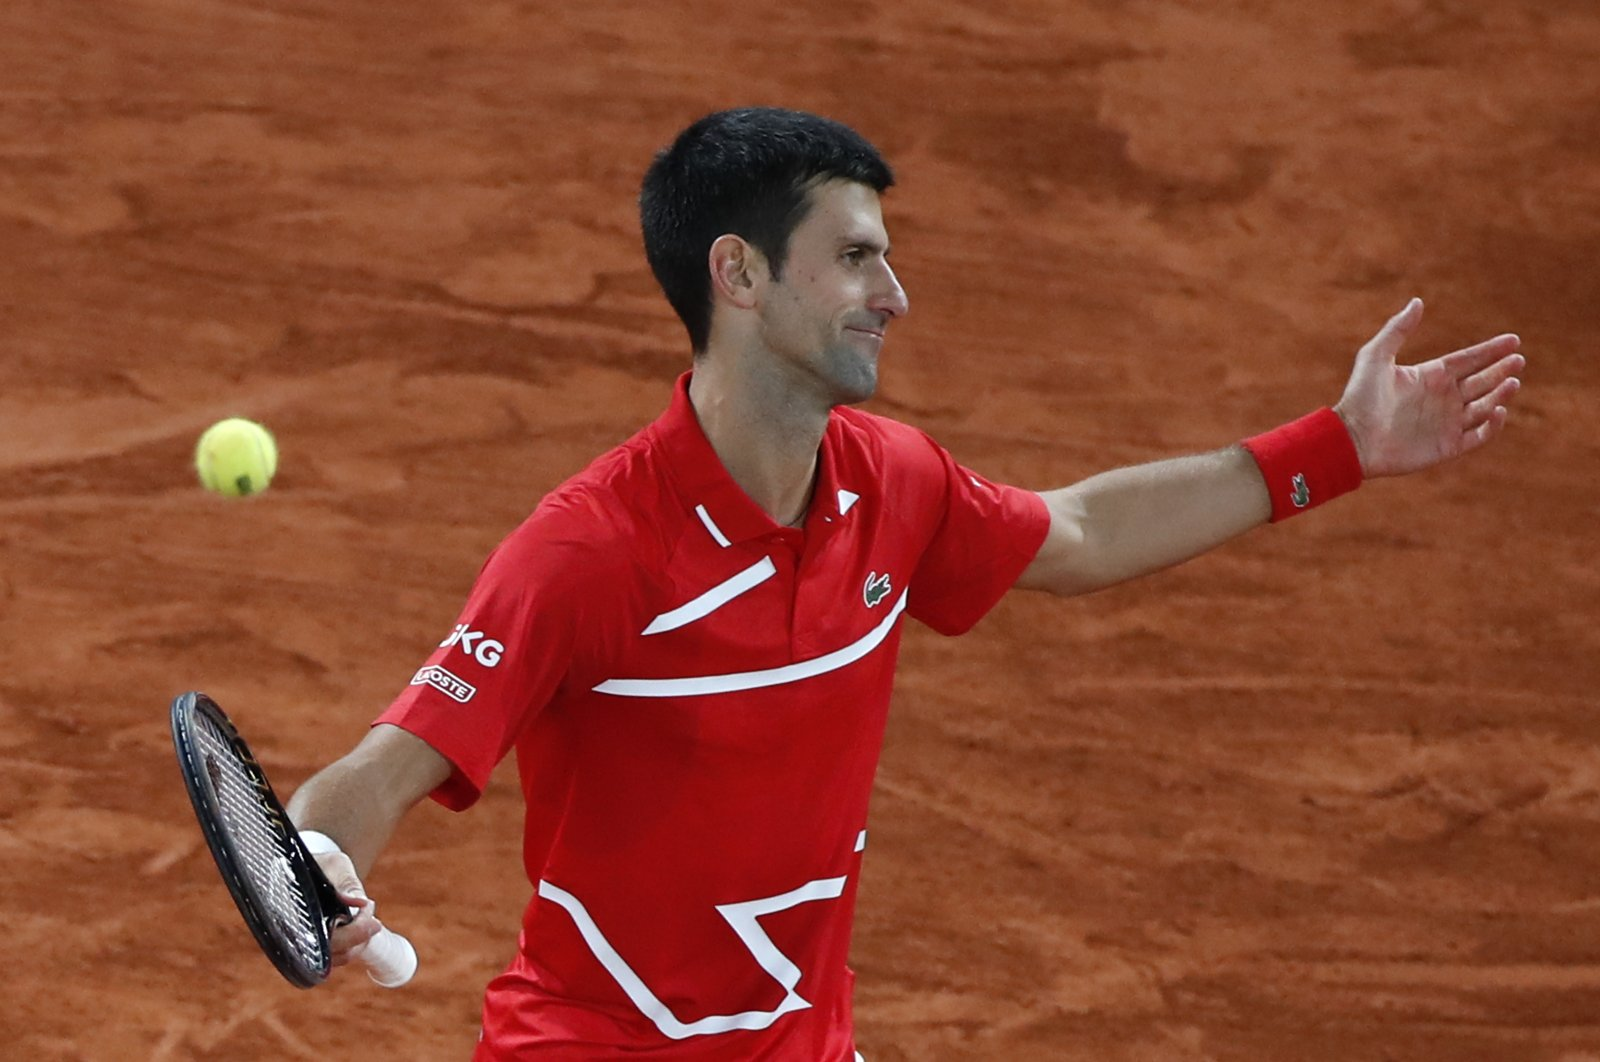 Novak Djokovic reacts during the French Open final match against Rafael Nadal, in Paris, France, Oct. 11, 2020. (AP Photo)